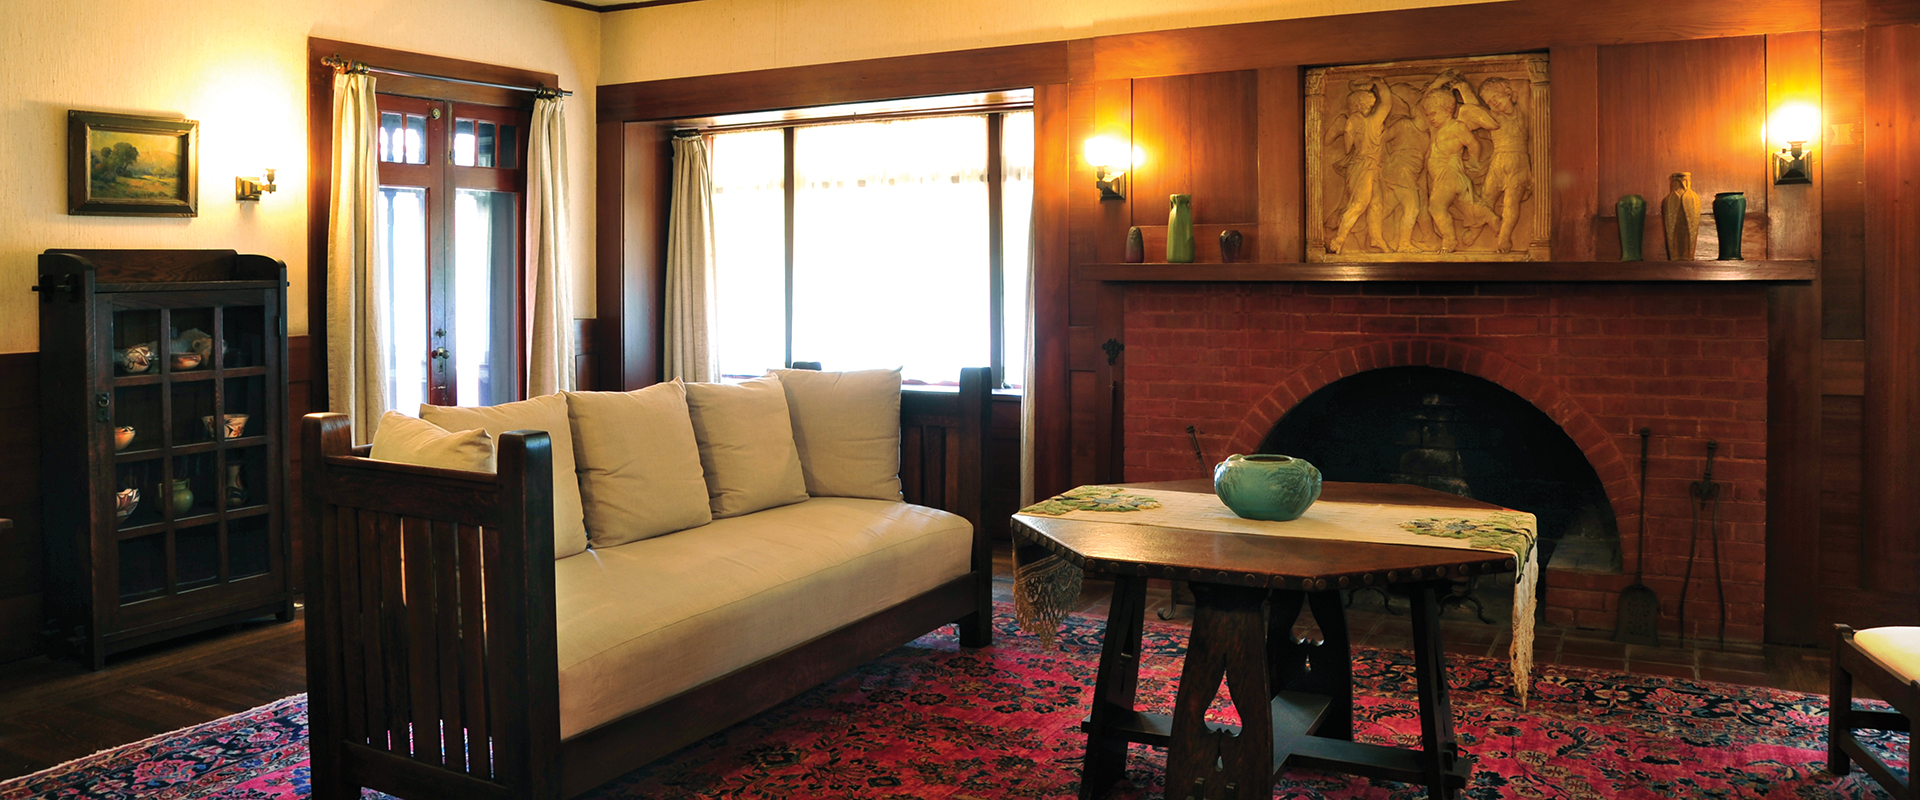 Marston House Living Room